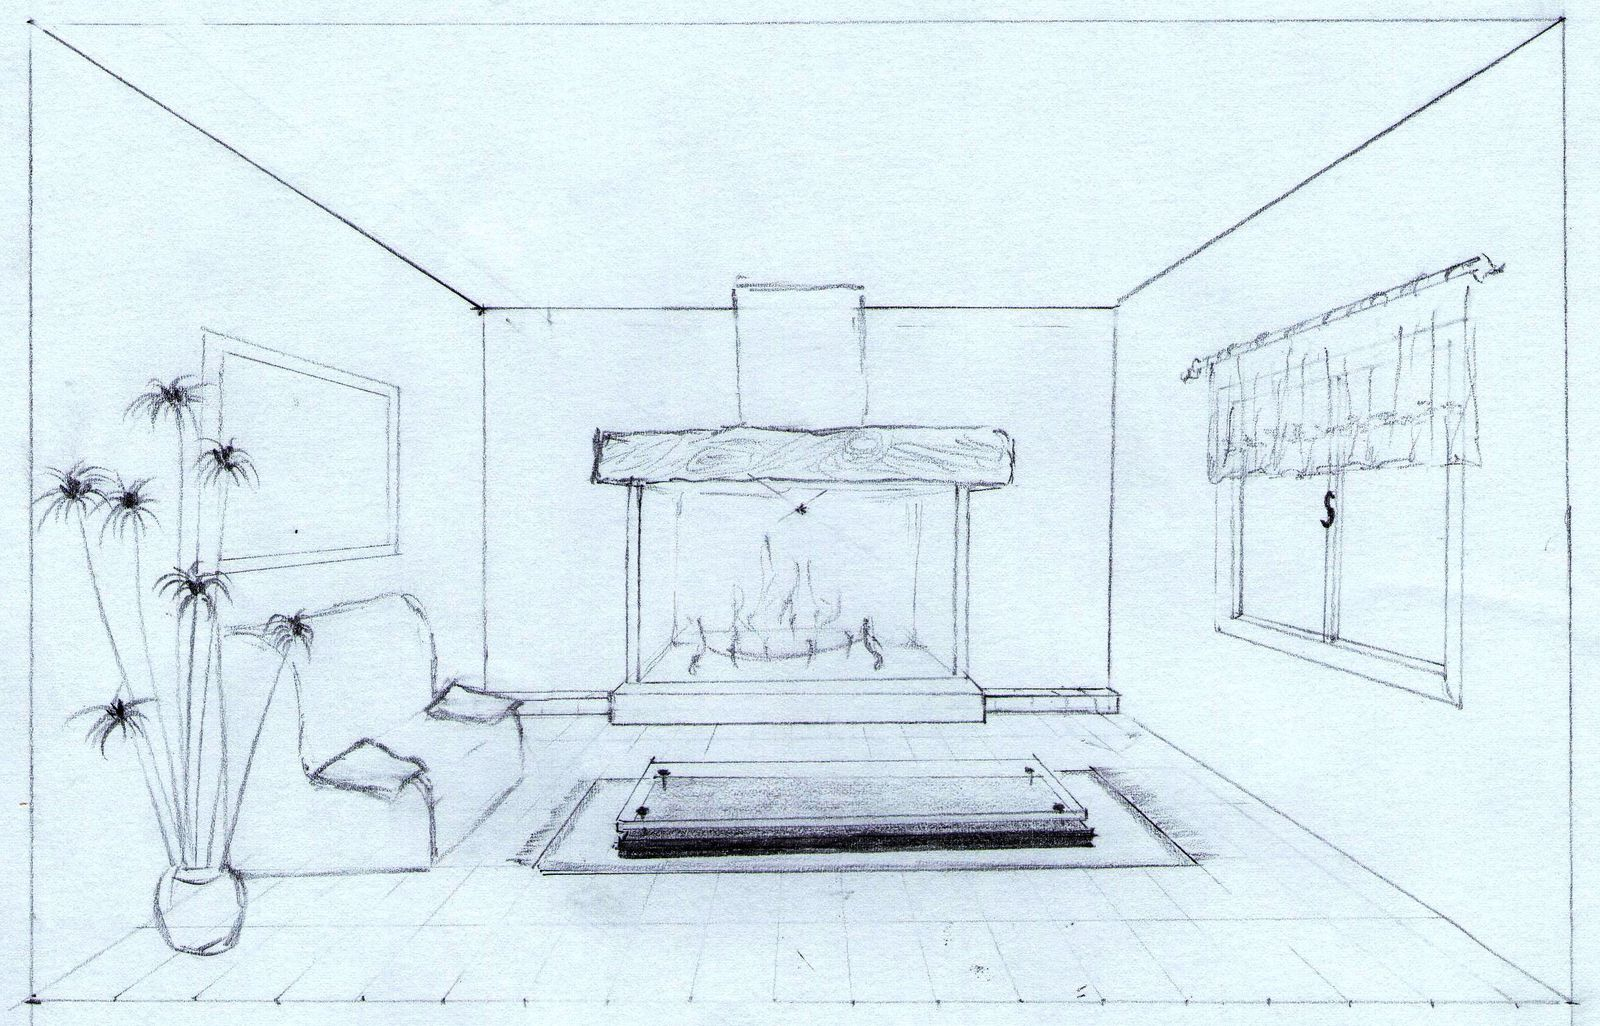 Croquis Maison Simple Perspective Construction D Une Maison Ailinn